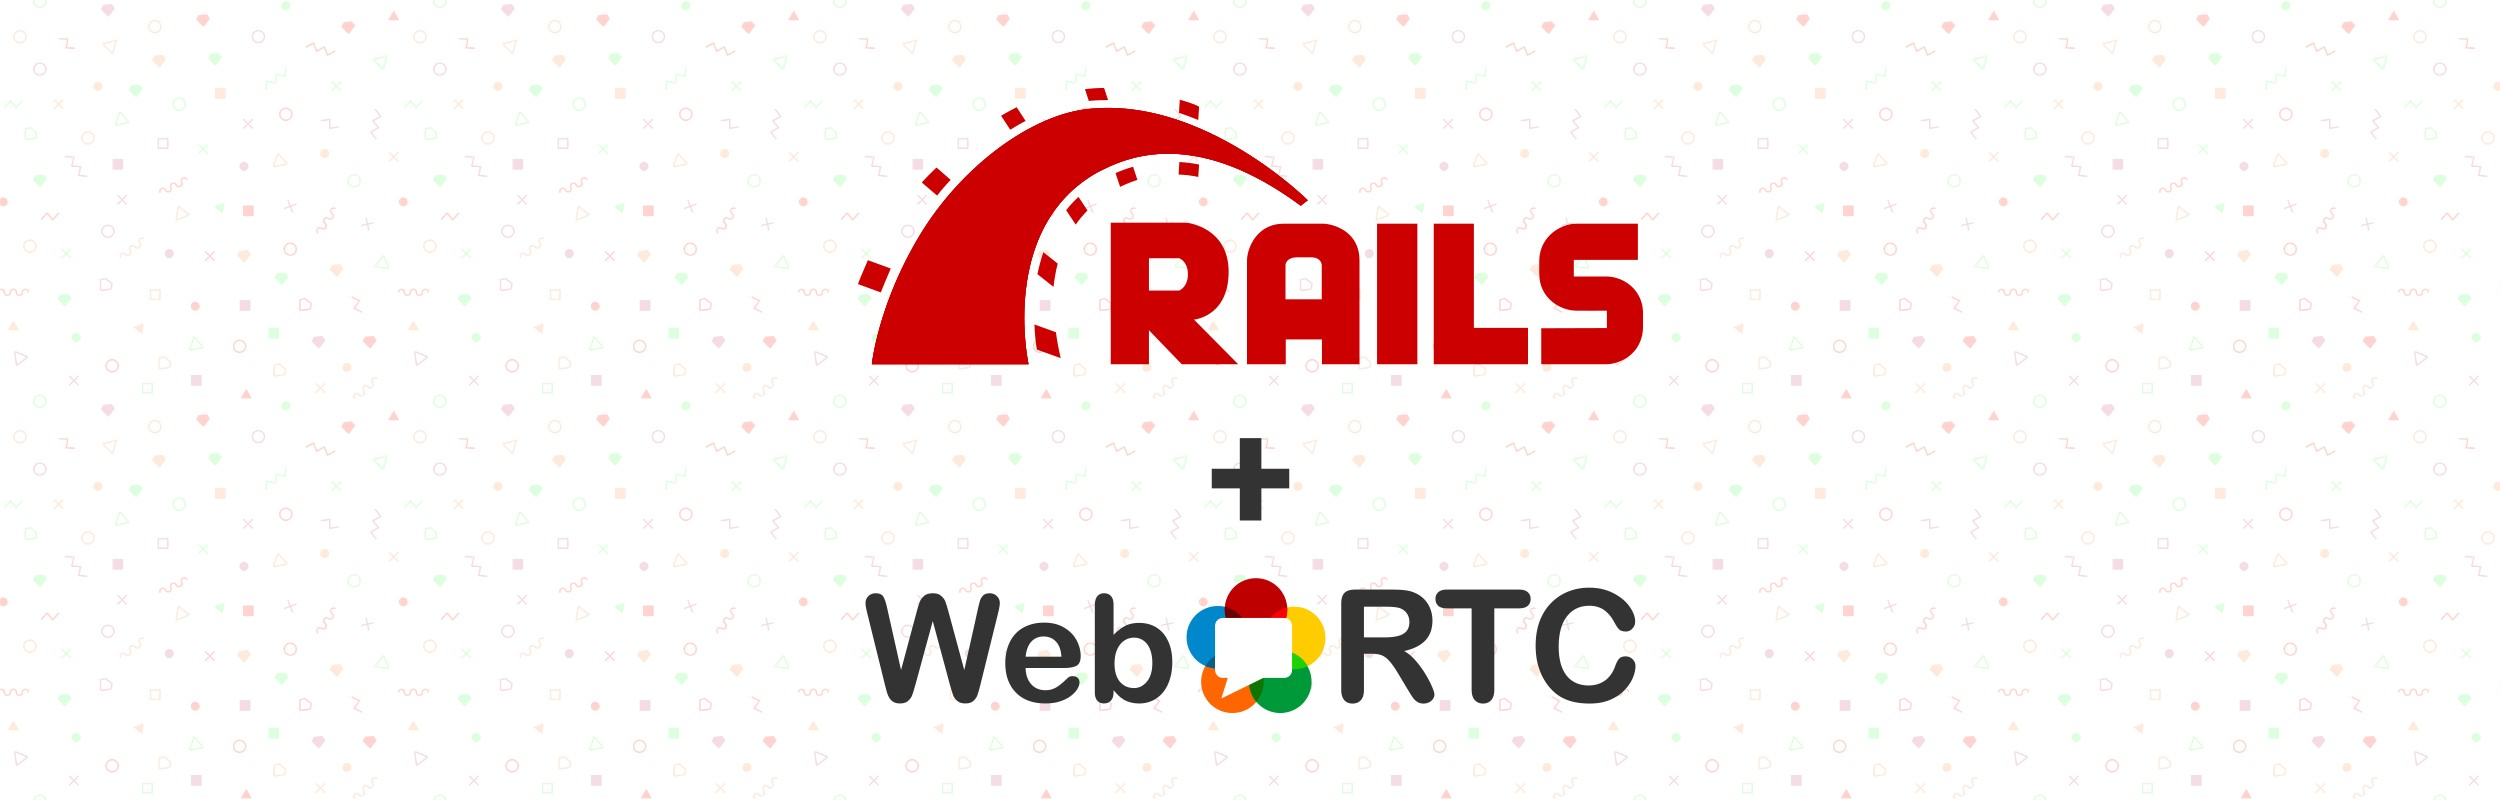 An Intro to WebRTC for Rails Developers - JP - Medium